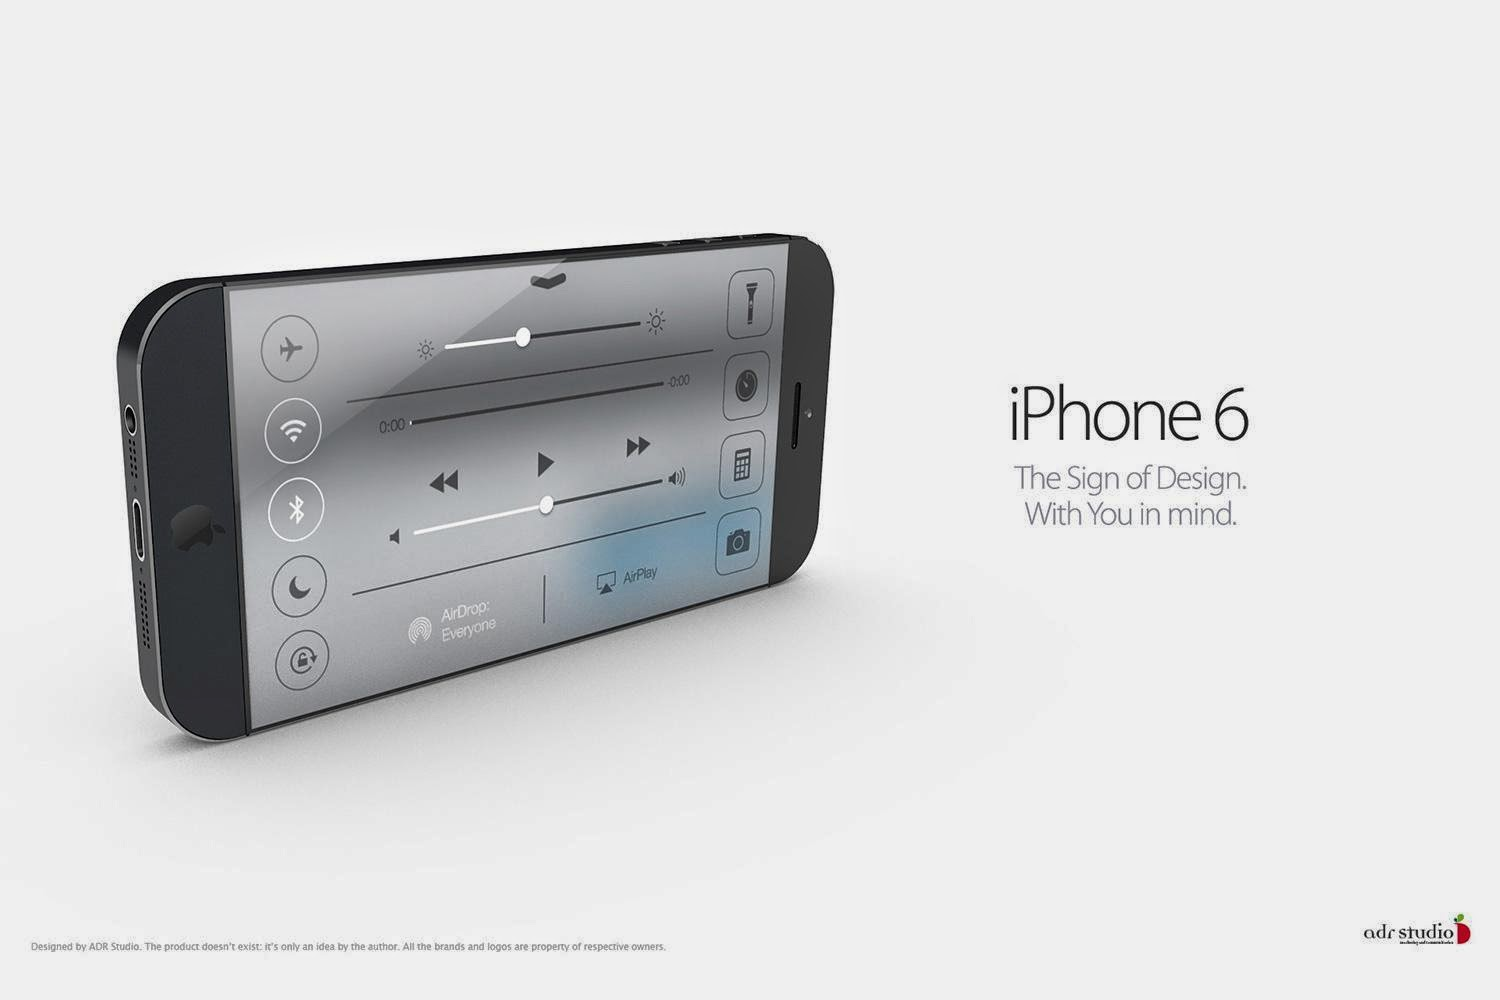 iPhone 6 Rumors and News and pictures